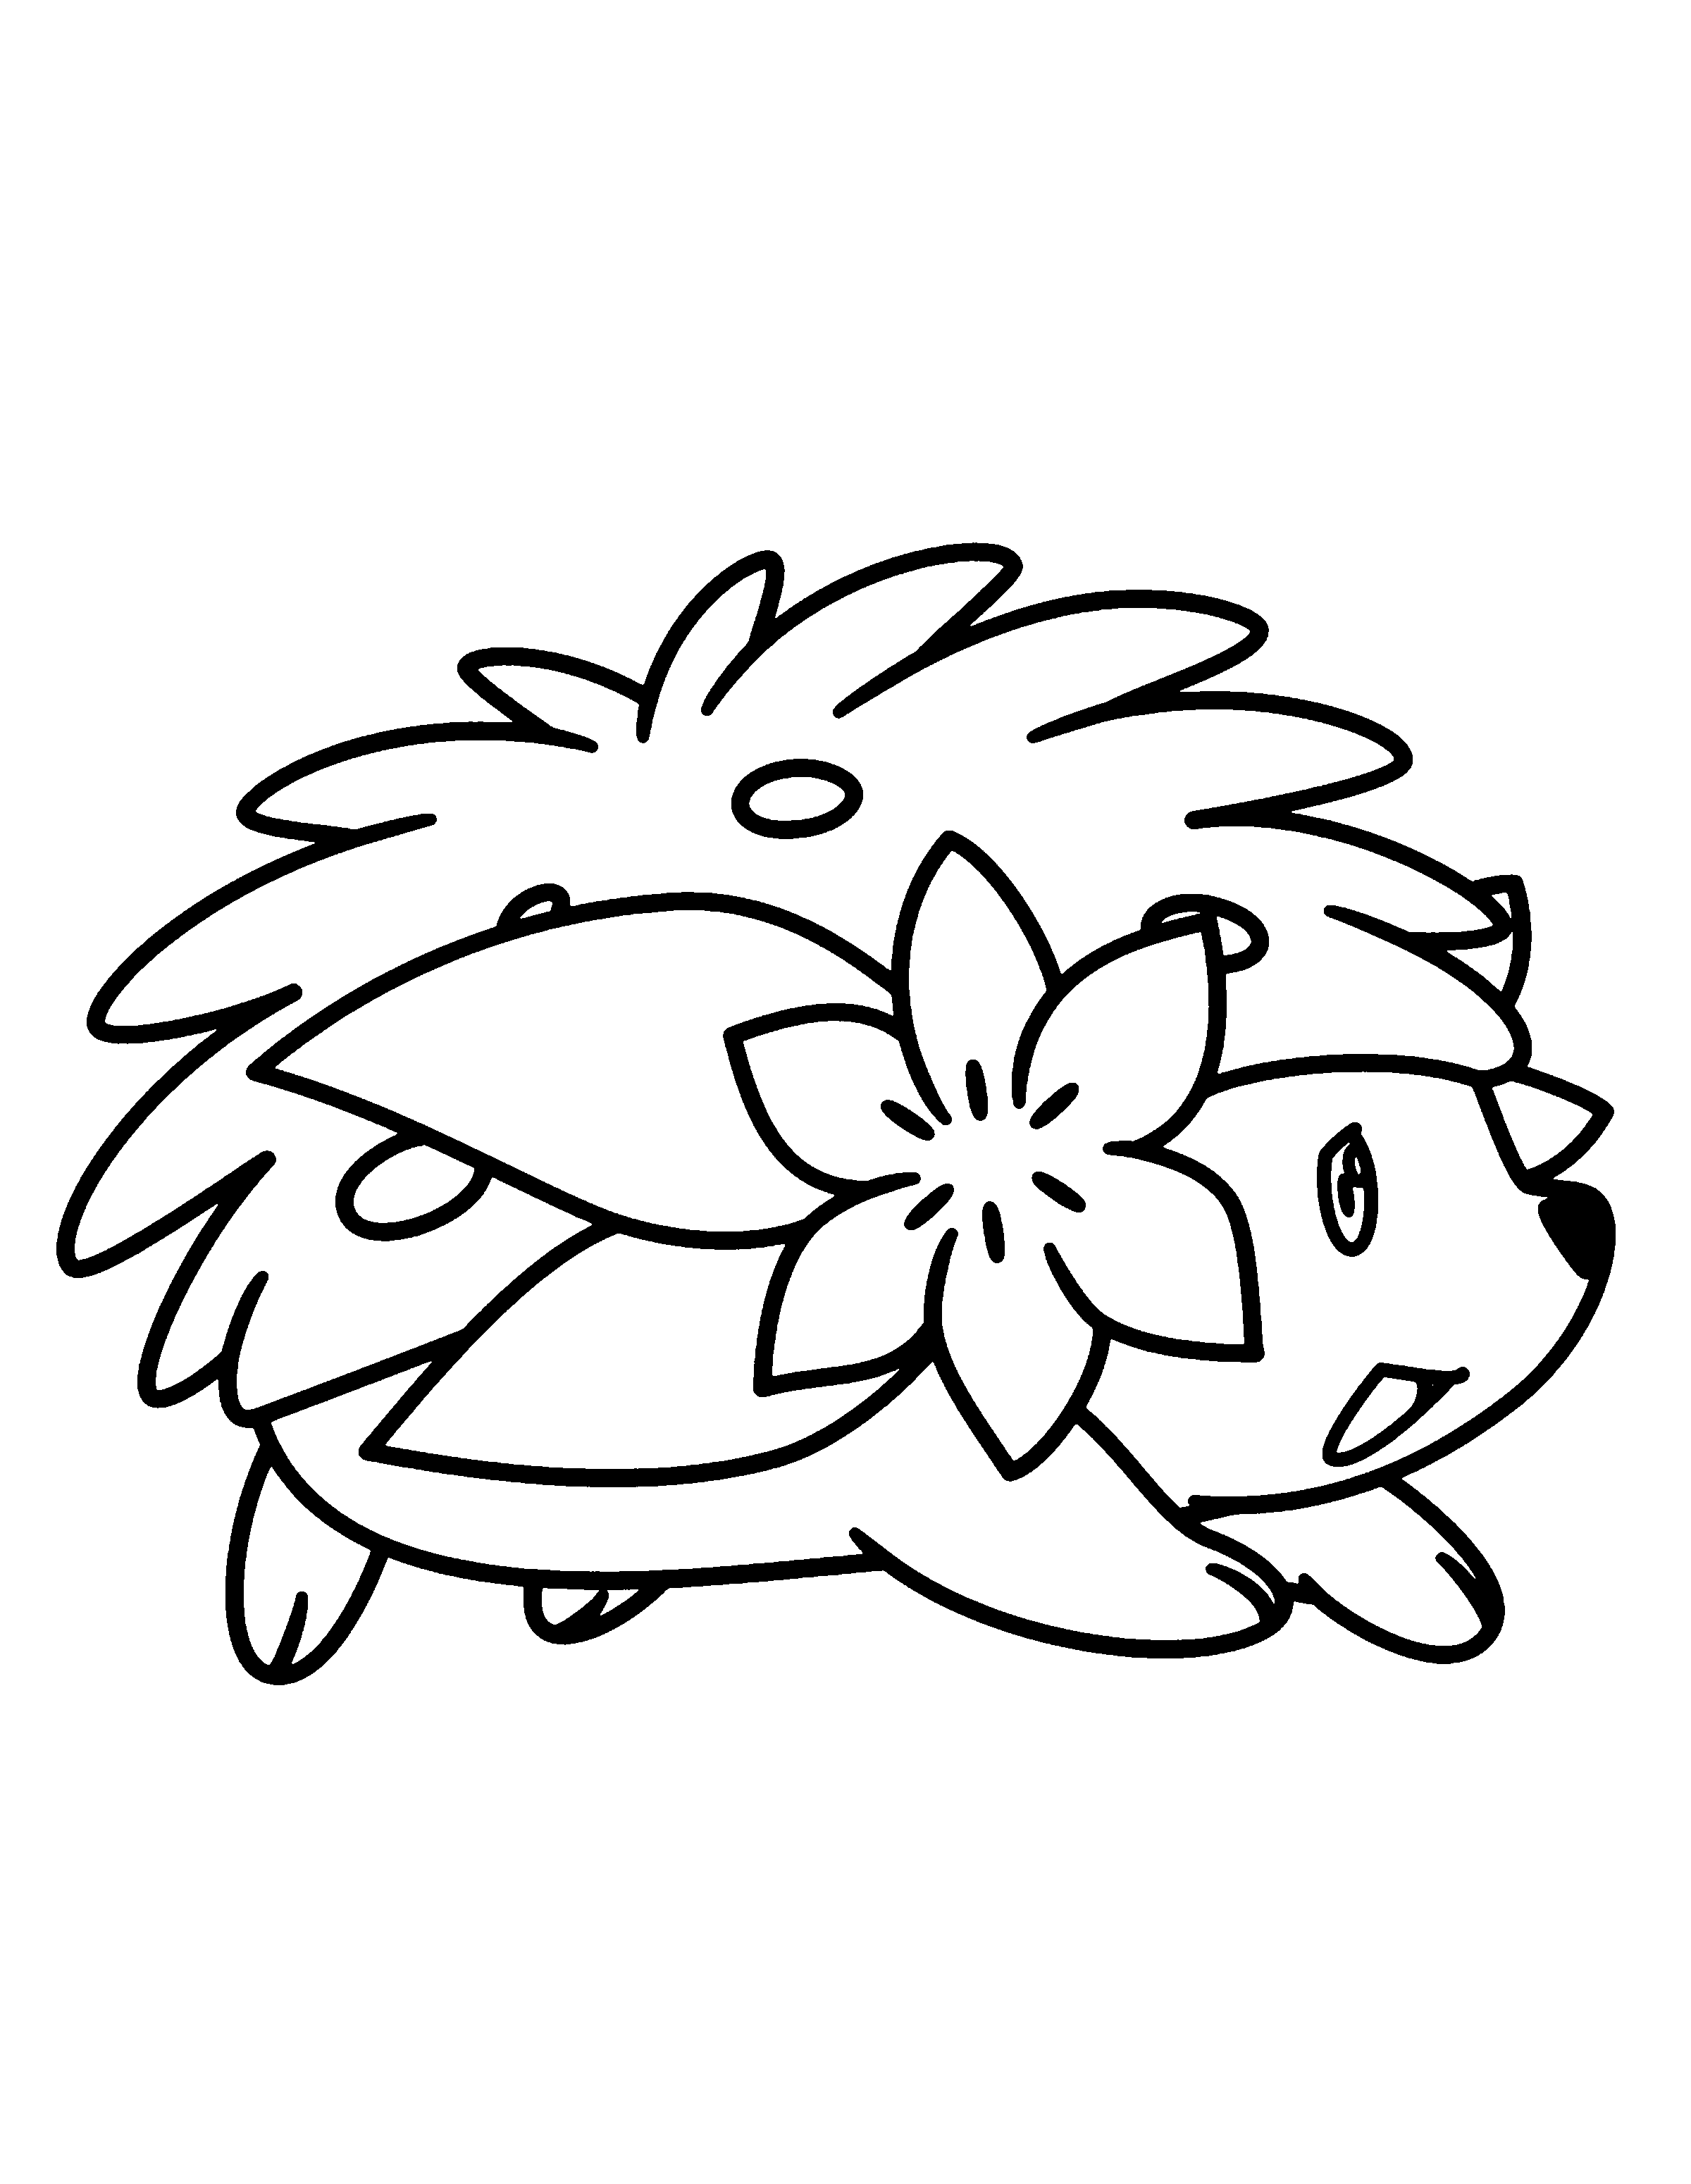 Pokemon diamond pearl Coloring Pages - Coloringpages1001.com